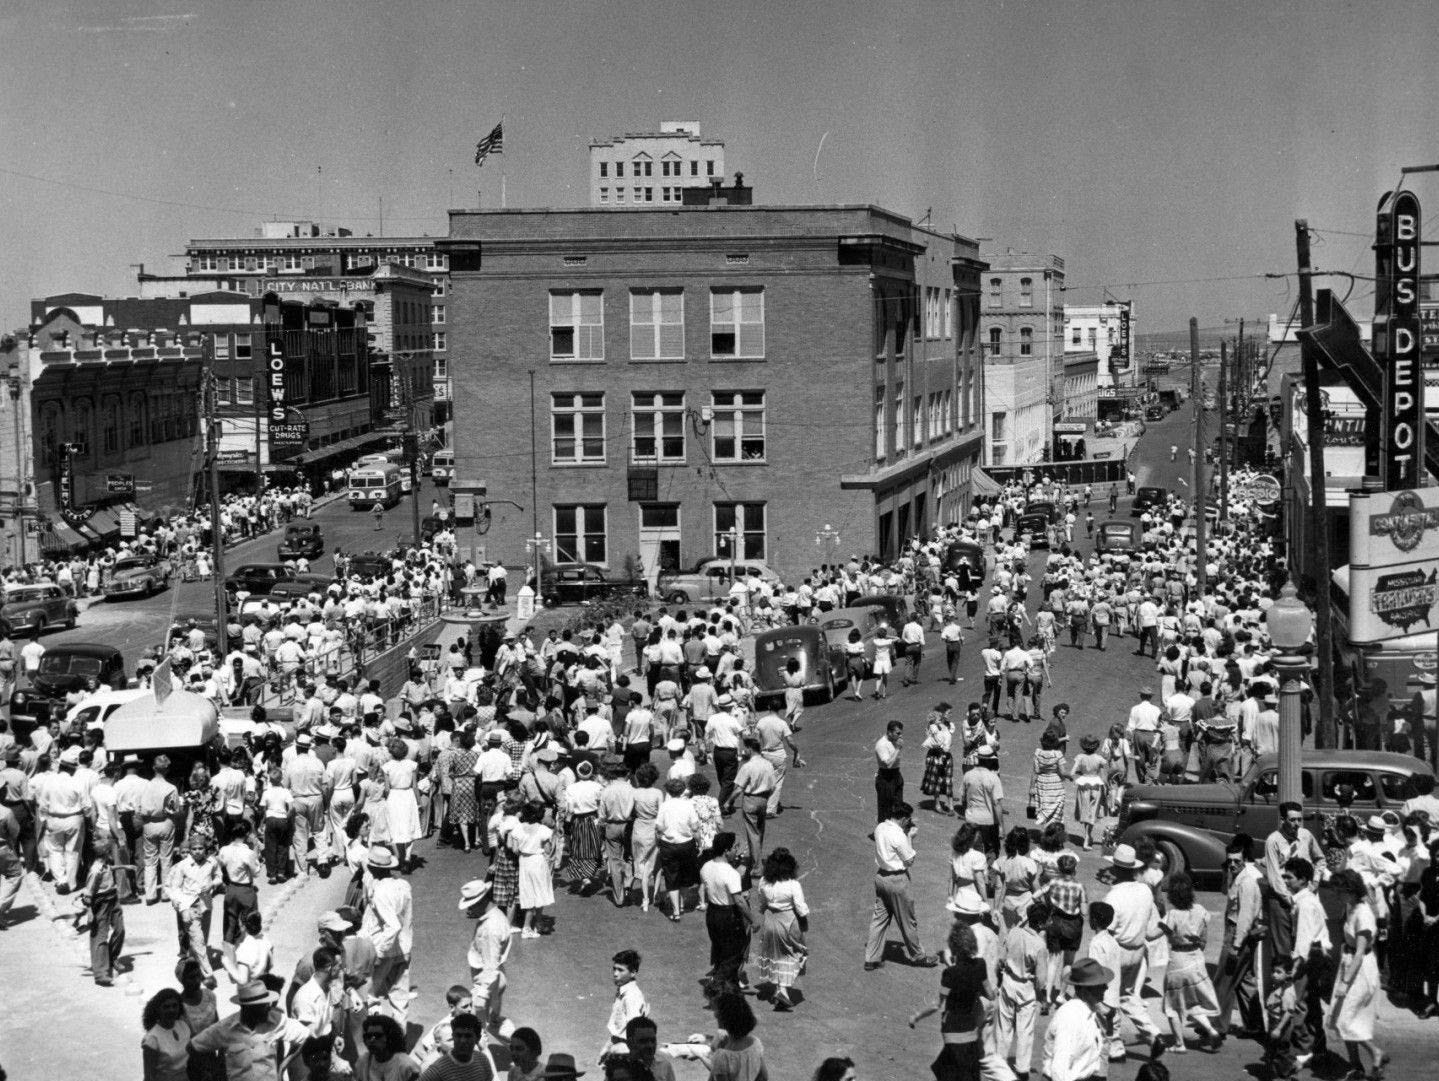 A large crowd turned out in February 1929 when the city's bluff tunnel was opened. The tunnel linked downtown Corpus Christi to uptown.